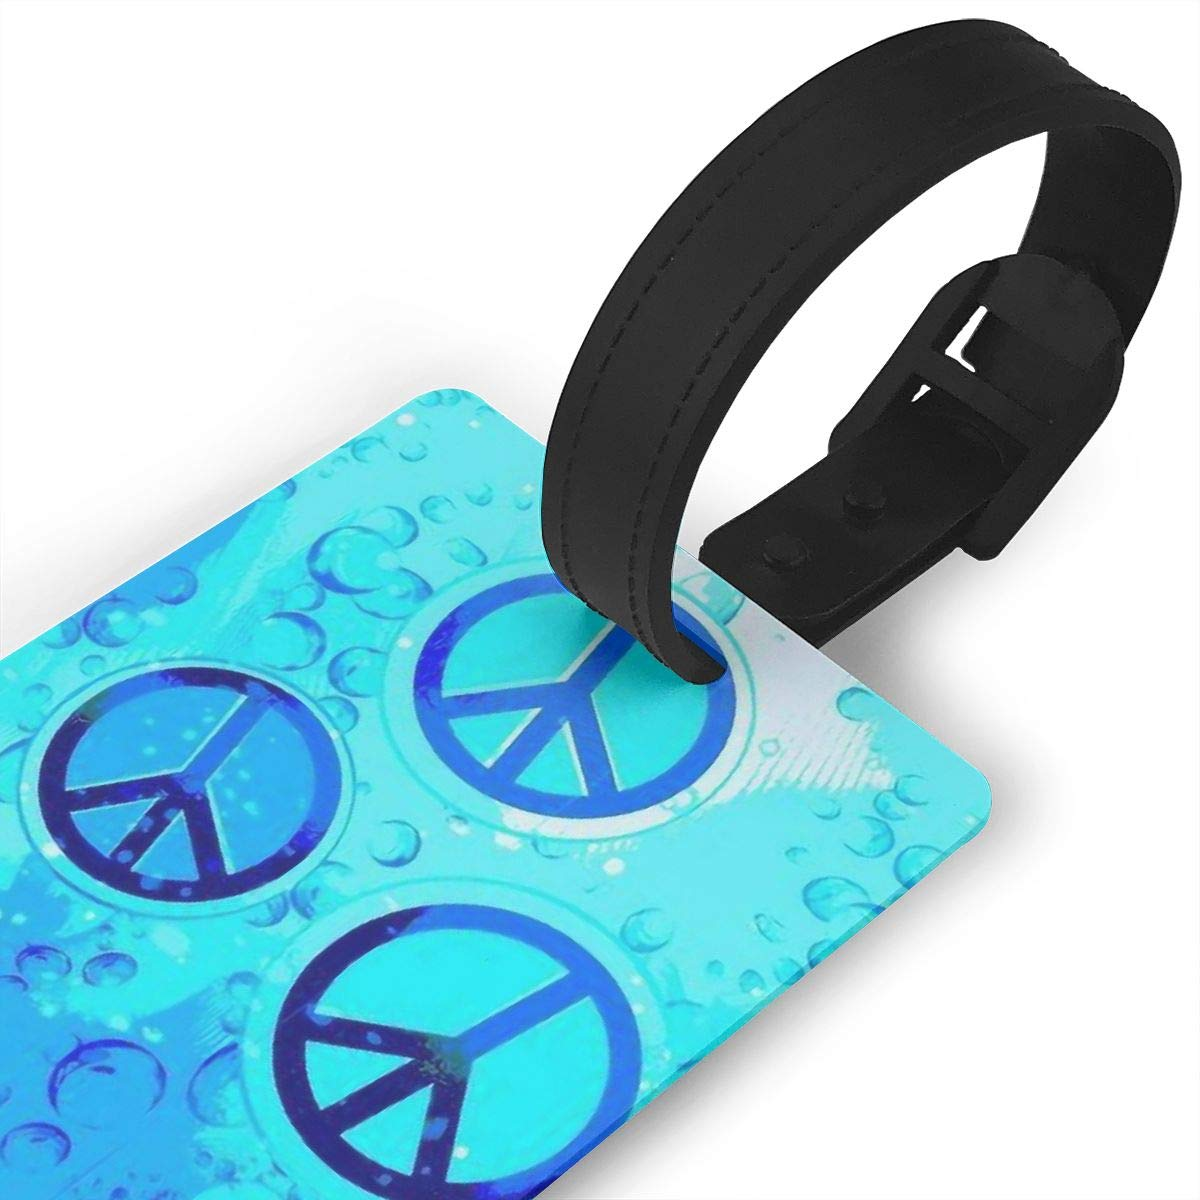 2 Pack Luggage Tags Peace Baggage Tag For Travel Tags Accessories